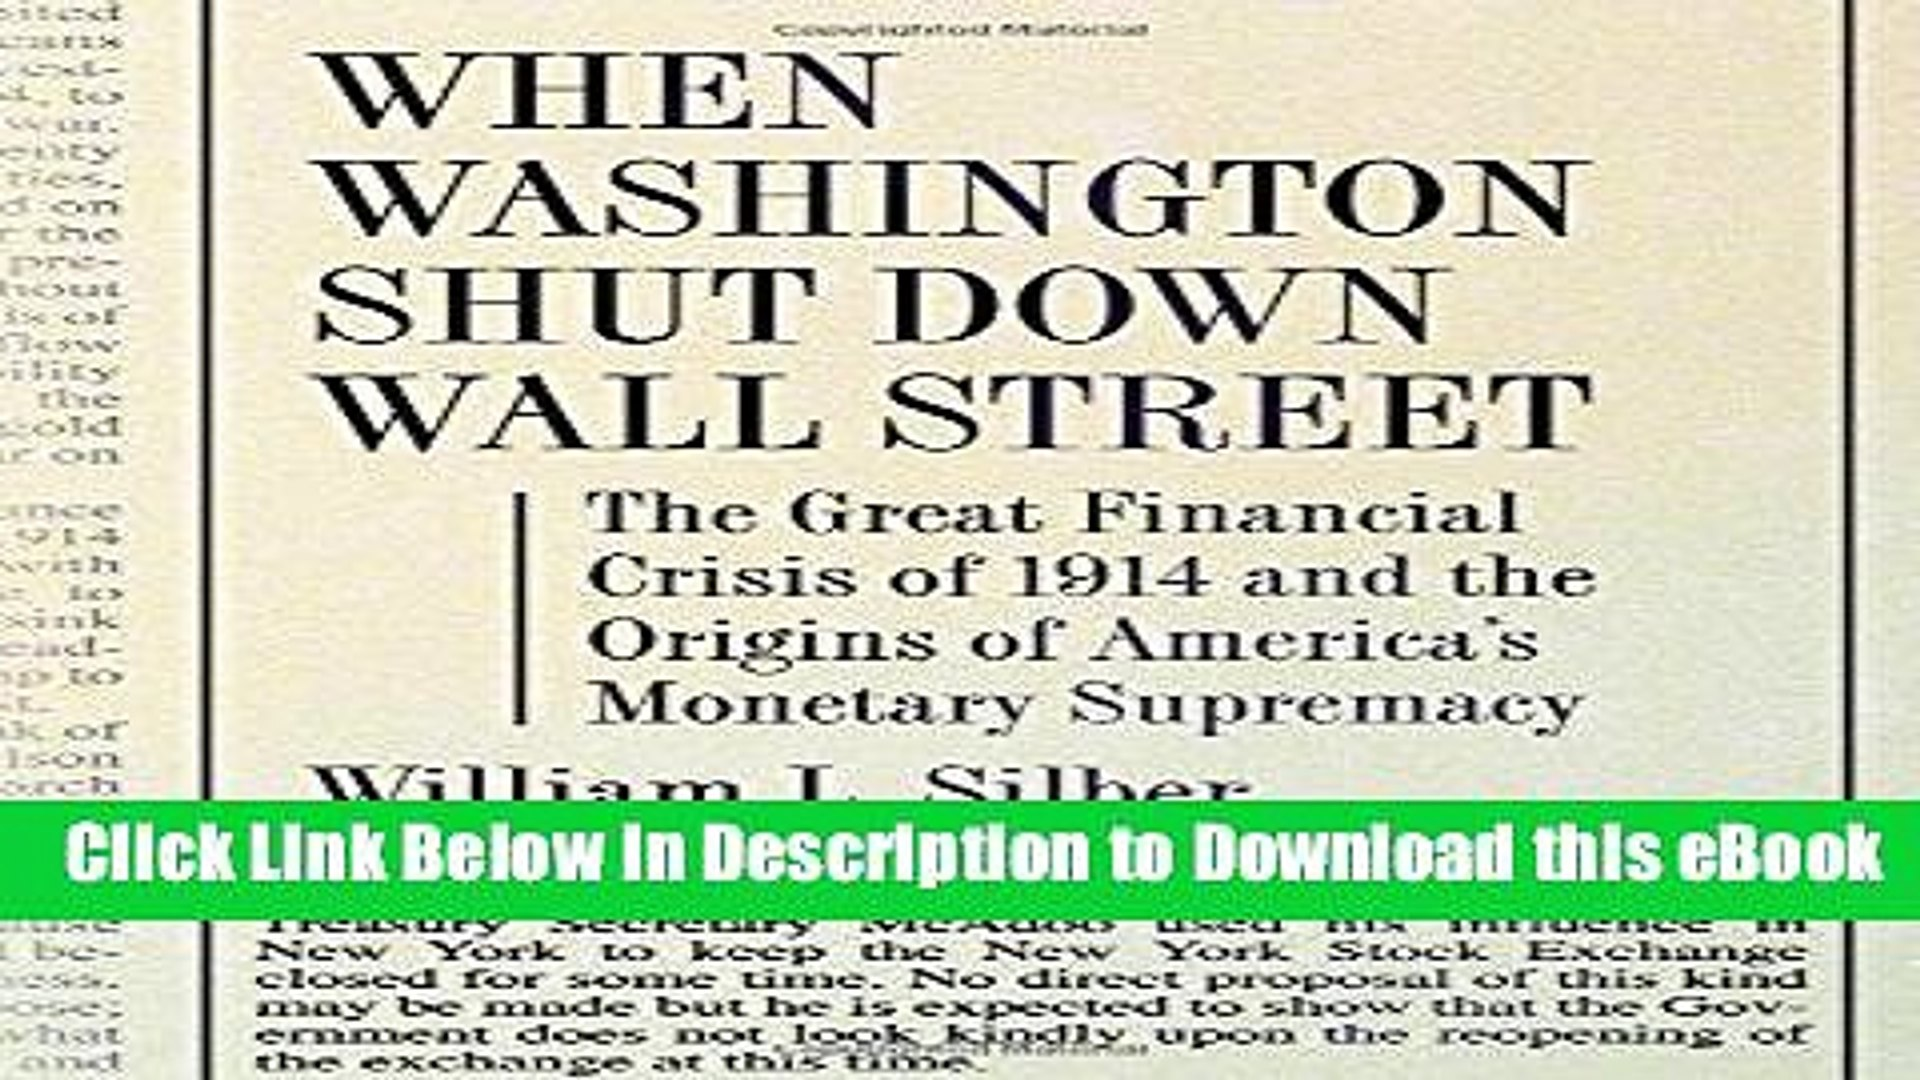 [Read Book] When Washington Shut Down Wall Street: The Great Financial Crisis of 1914 and the